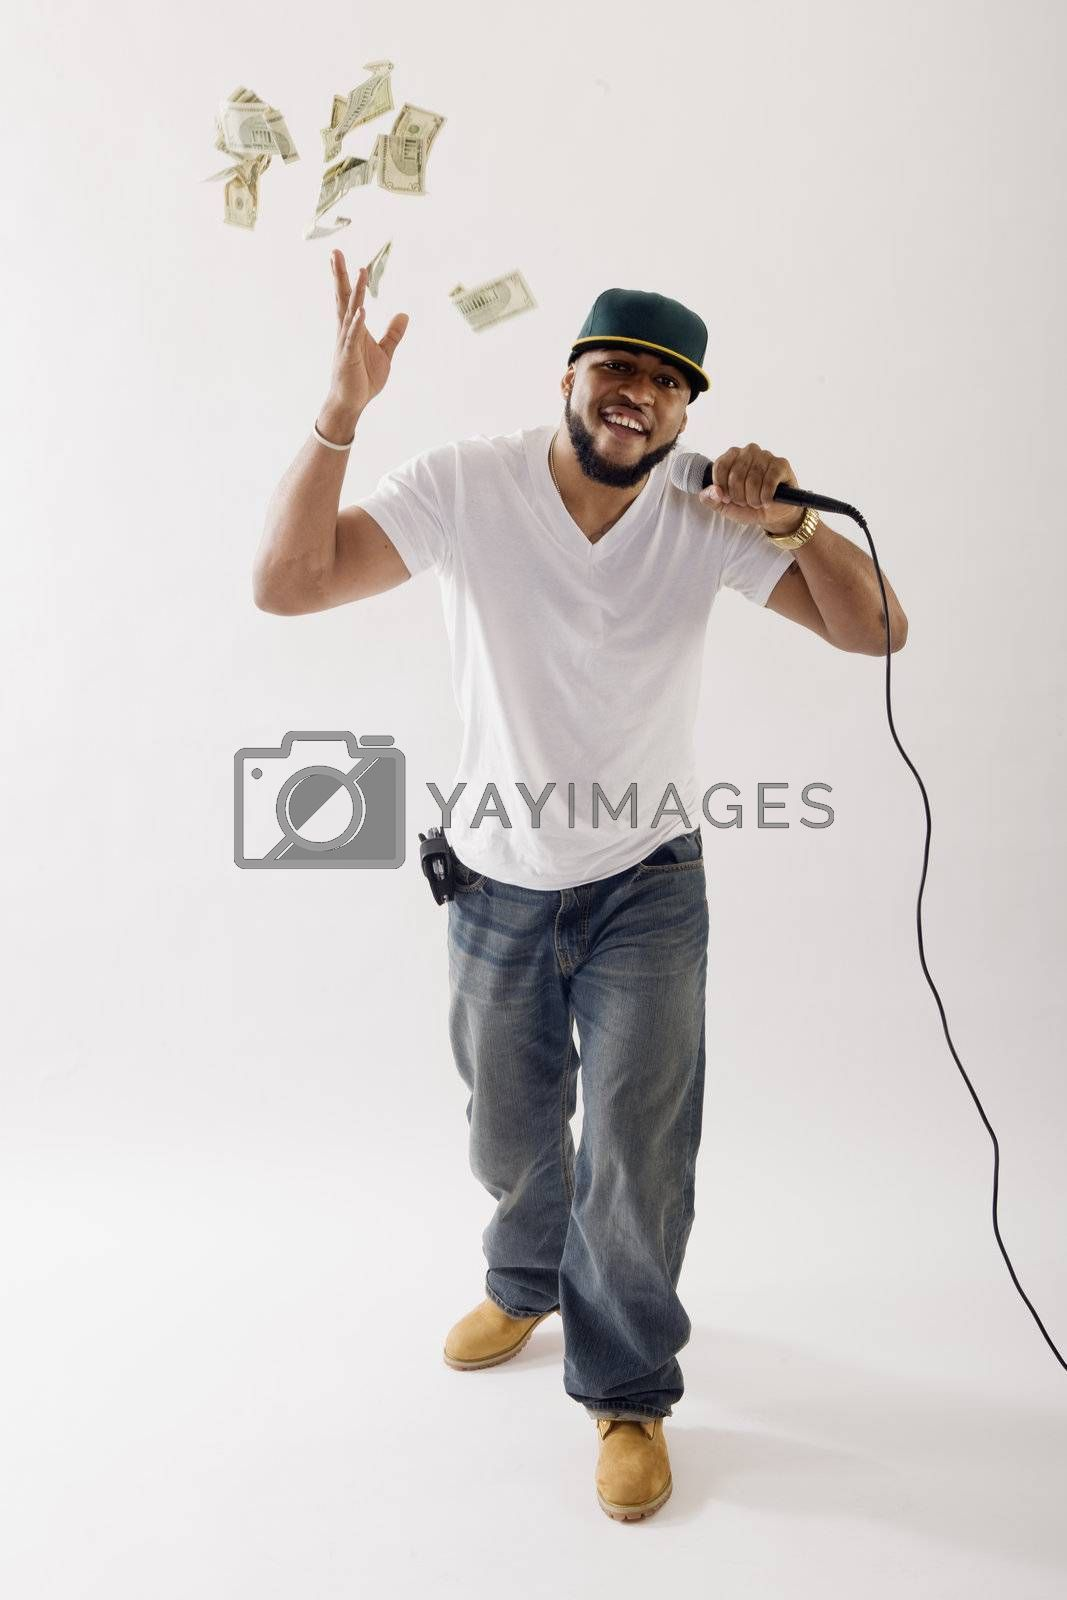 Black vocalist singing into microphone tossing money in the air